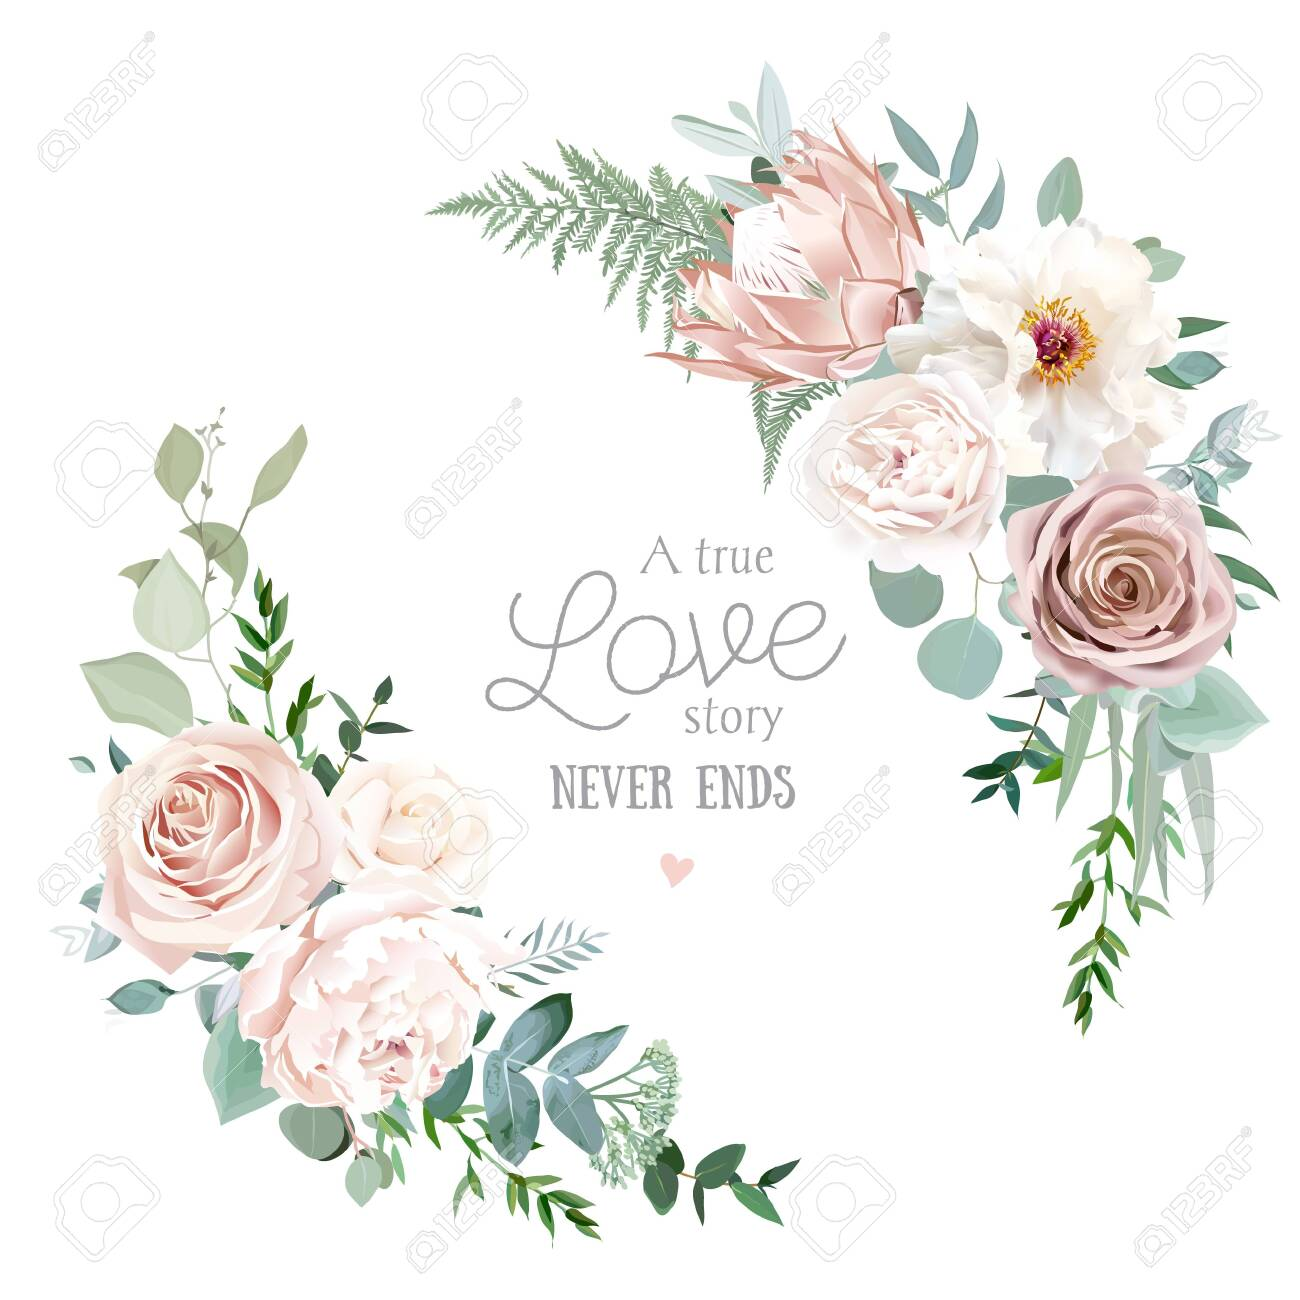 Silver sage and blush pink flowers vector round frame. Creamy beige and dusty rose, white peony, protea, ranunculus, eucalyptus. Wedding floral. Pastel watercolor background. Isolated and editable - 151265832